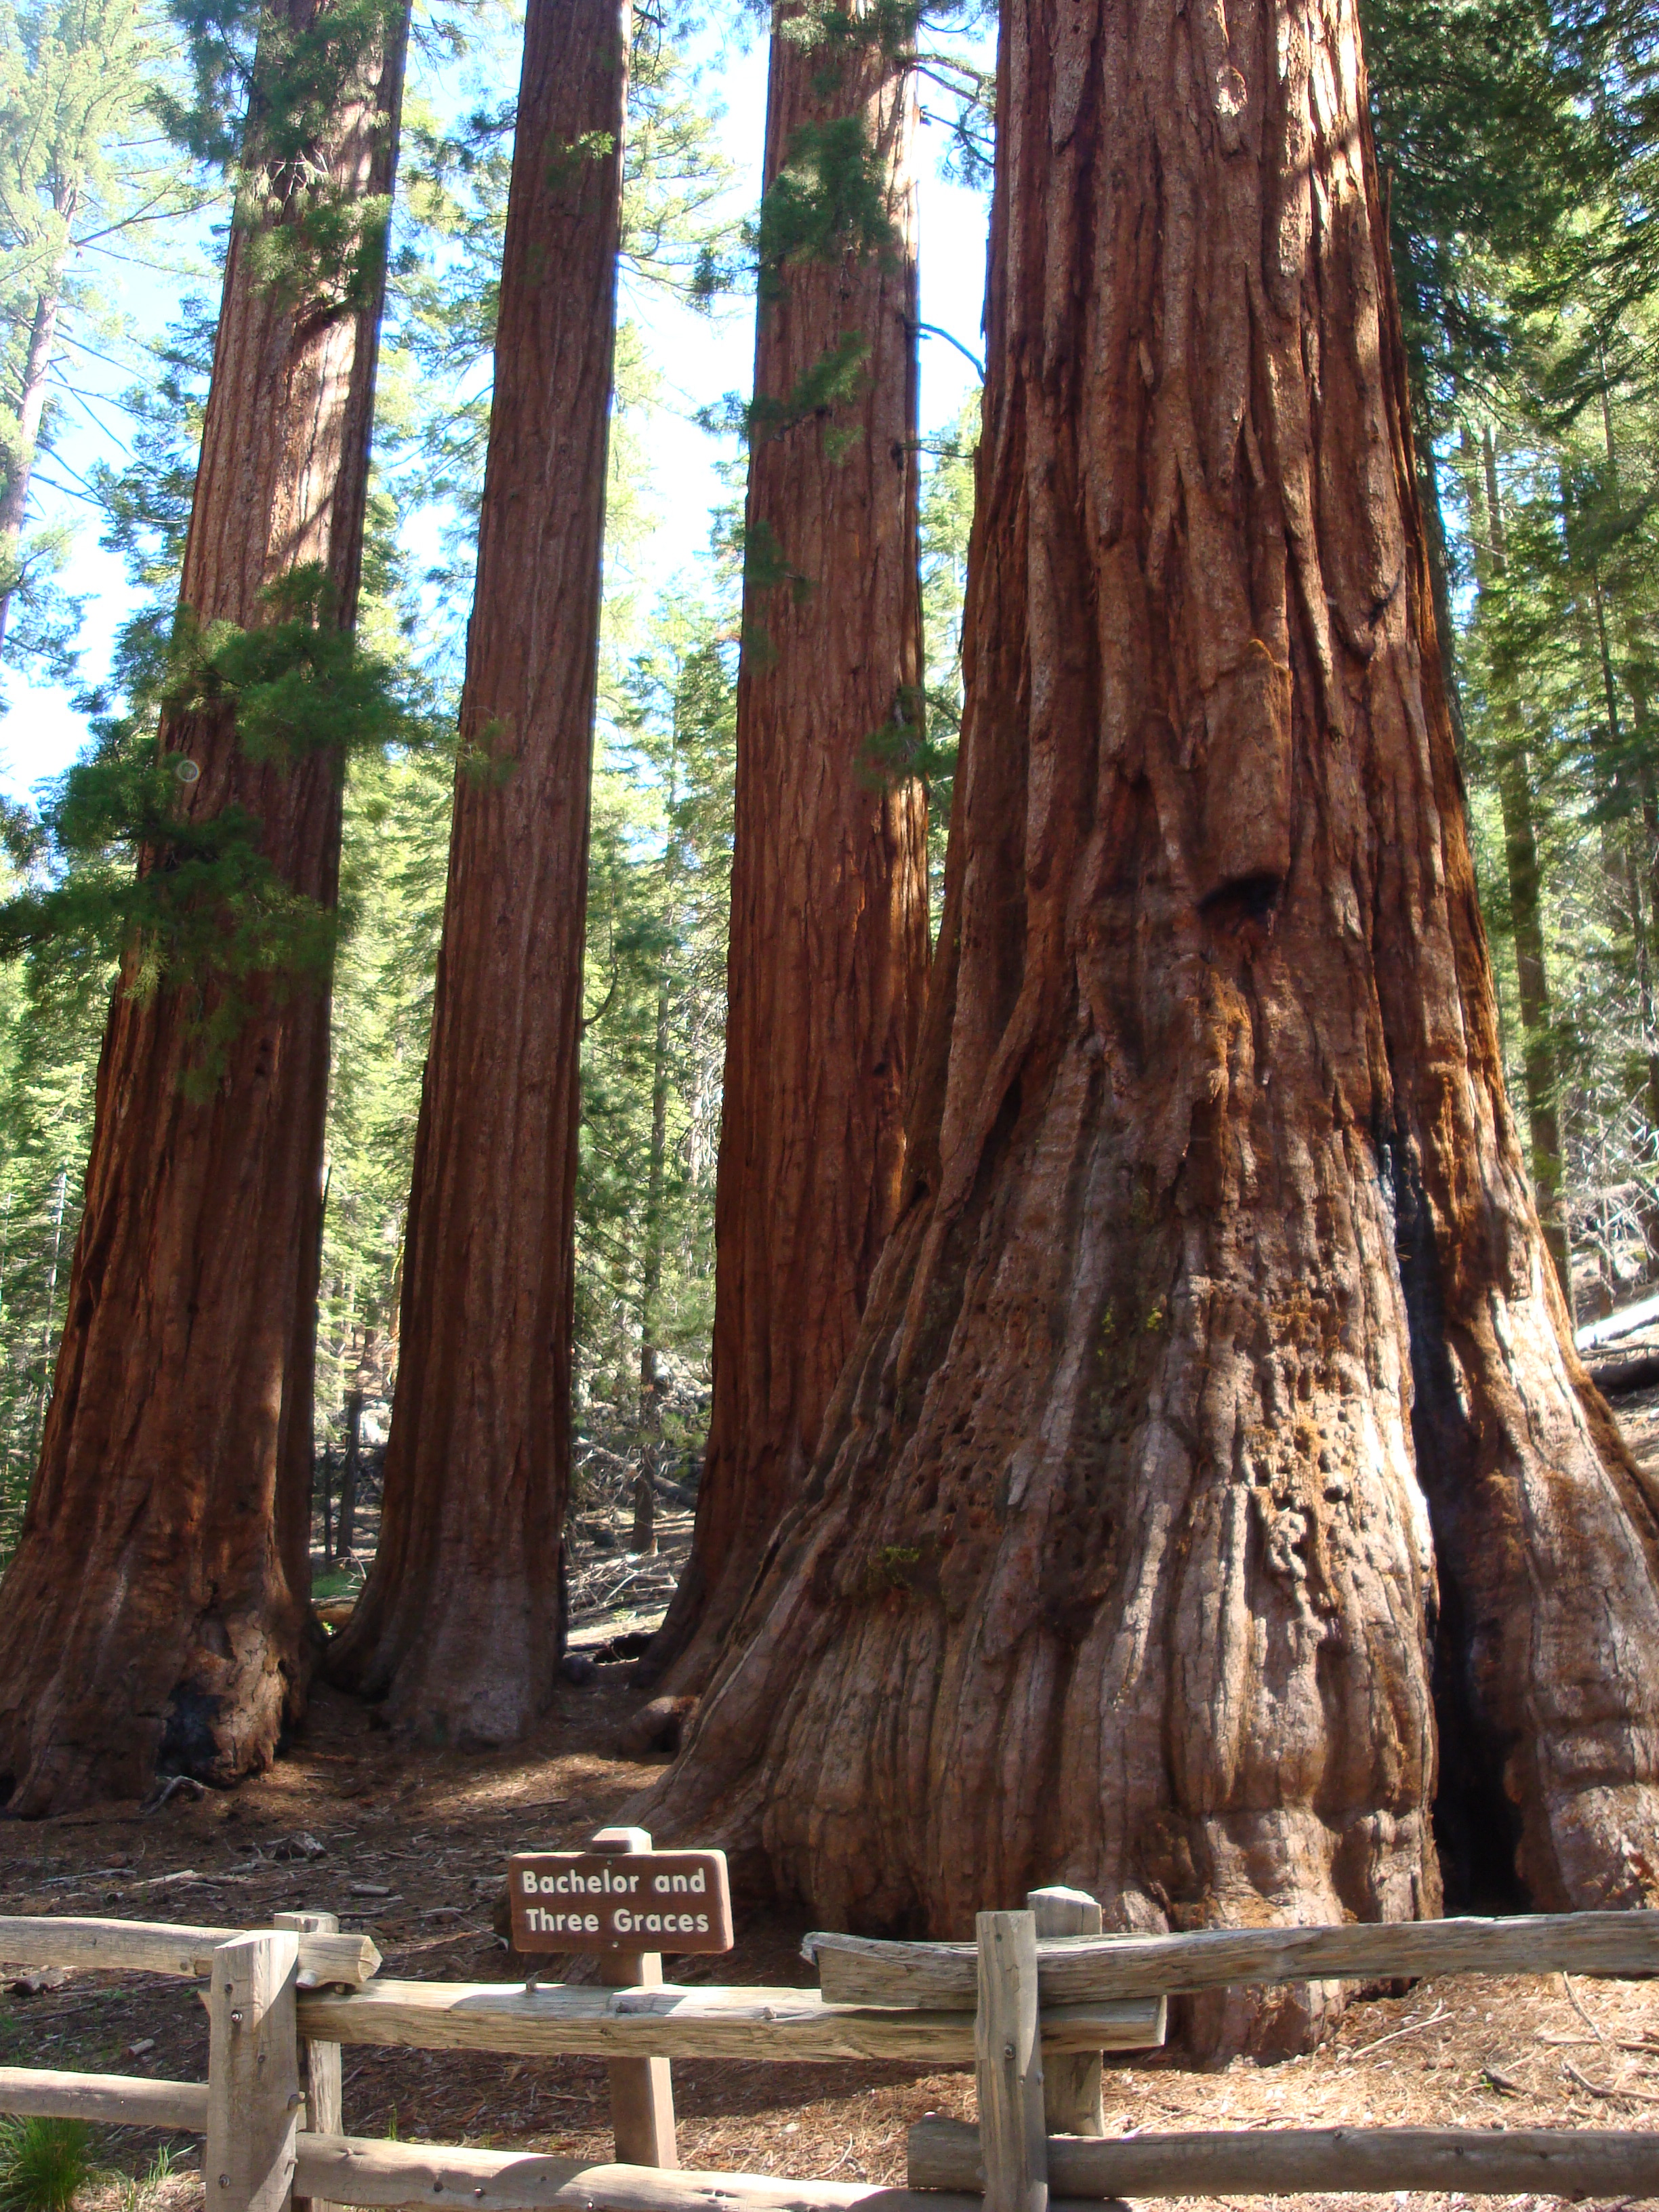 The Bachelor and The Three Graces - May 2008 - Mariposa Grove of Giant Sequoias. The Grove has been closed in 2015 for renovation and opened again in June 2018. The National Park Service removed all the roads through the grove and eliminated vehicular traffic as it was causing damage to the trees root systems.